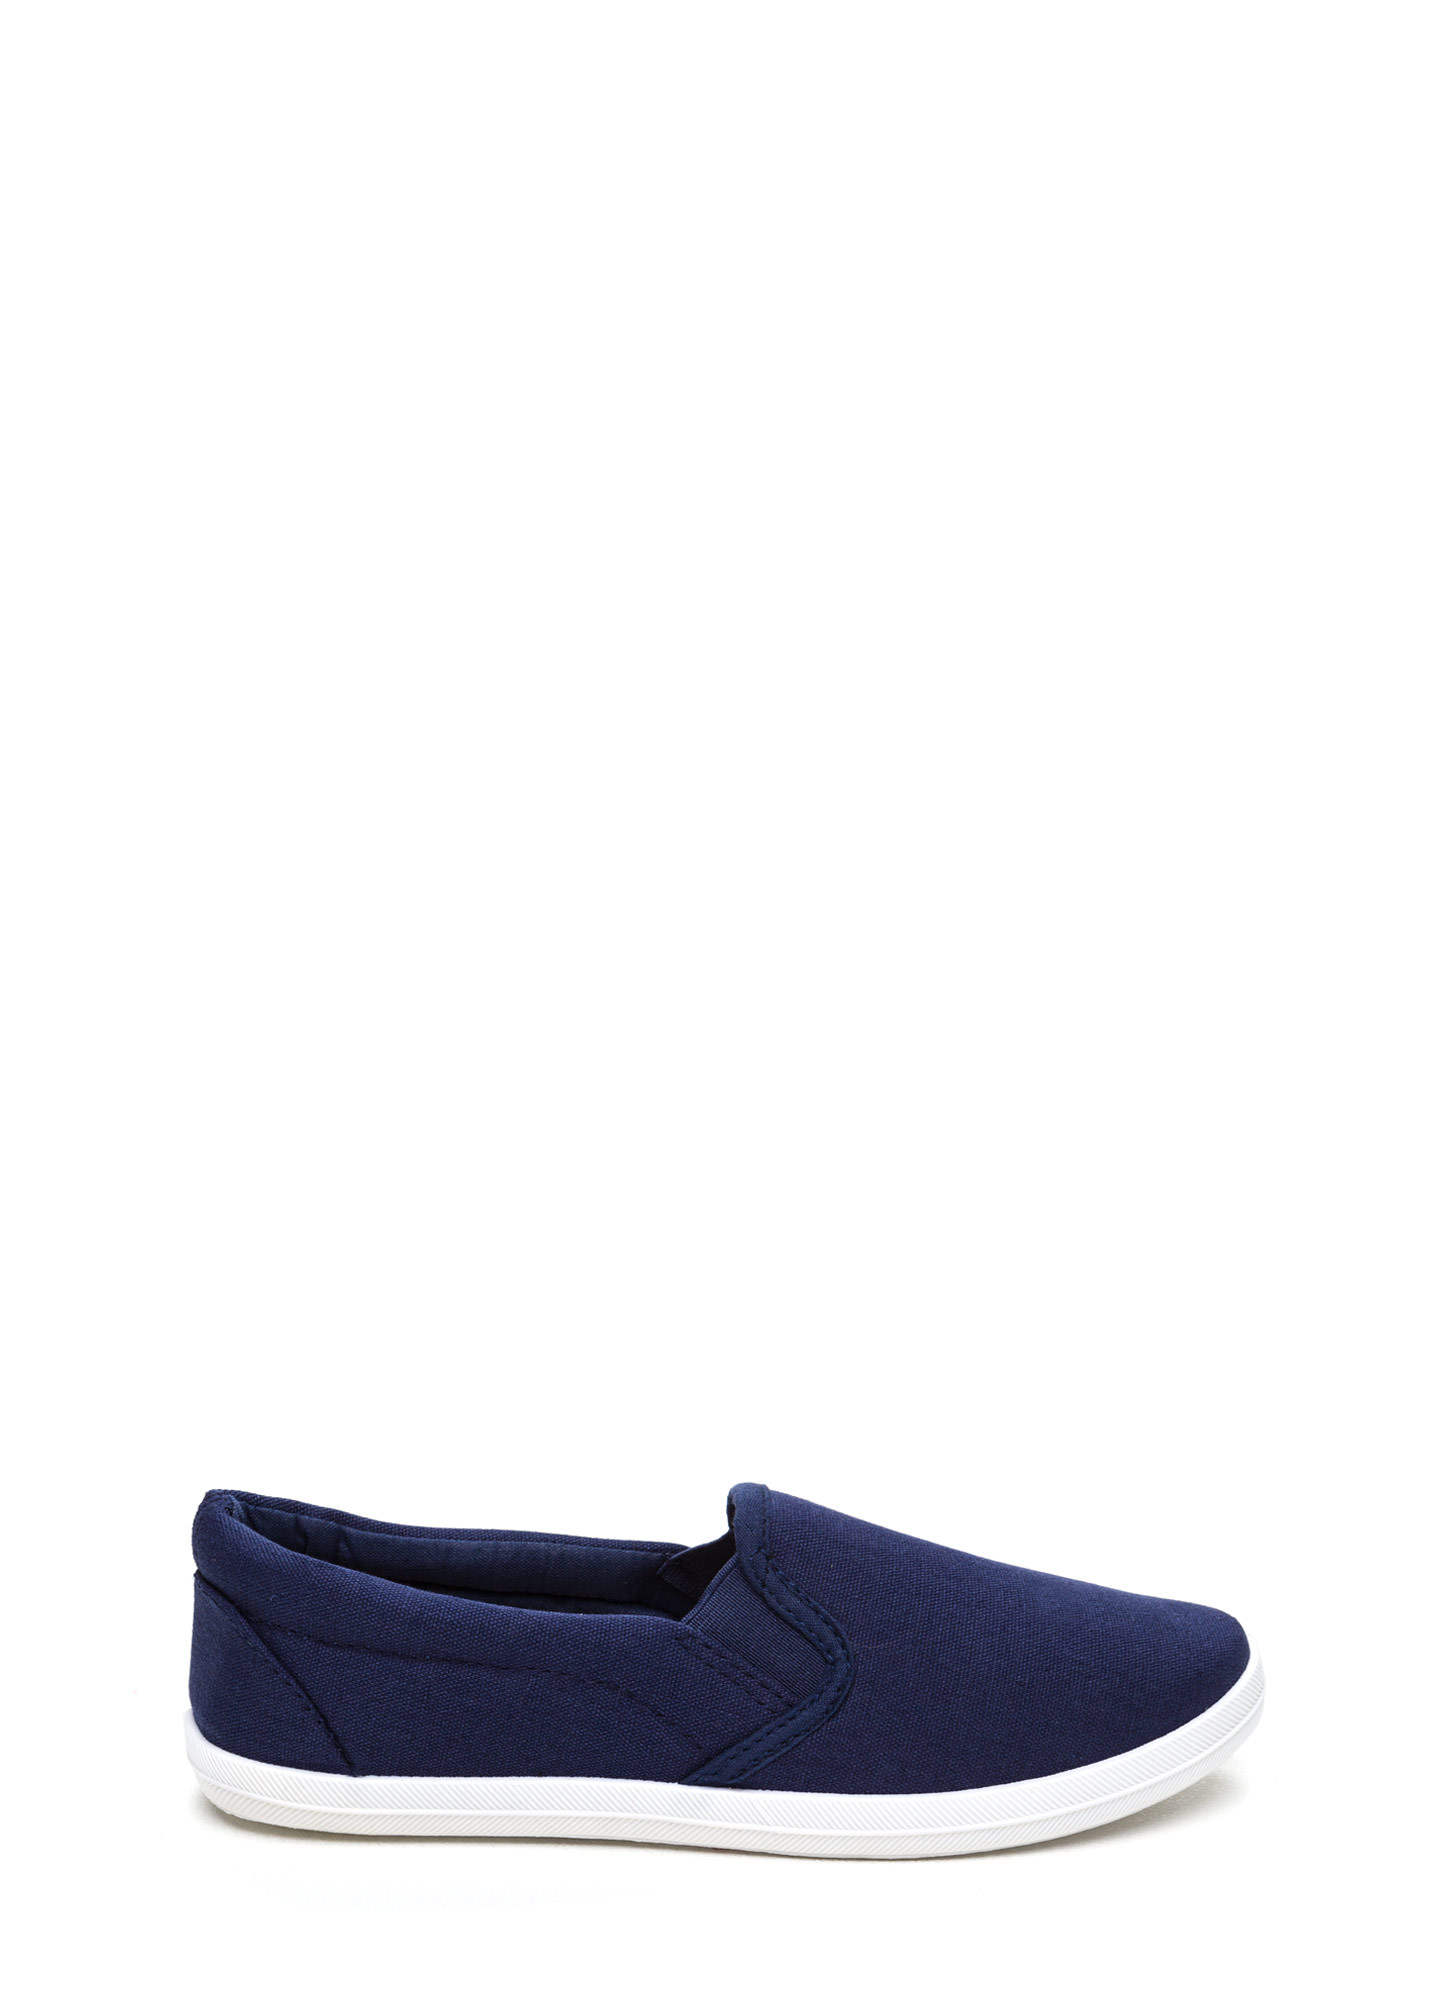 Basic Solid Canvas Skimmers NAVY (Final Sale)